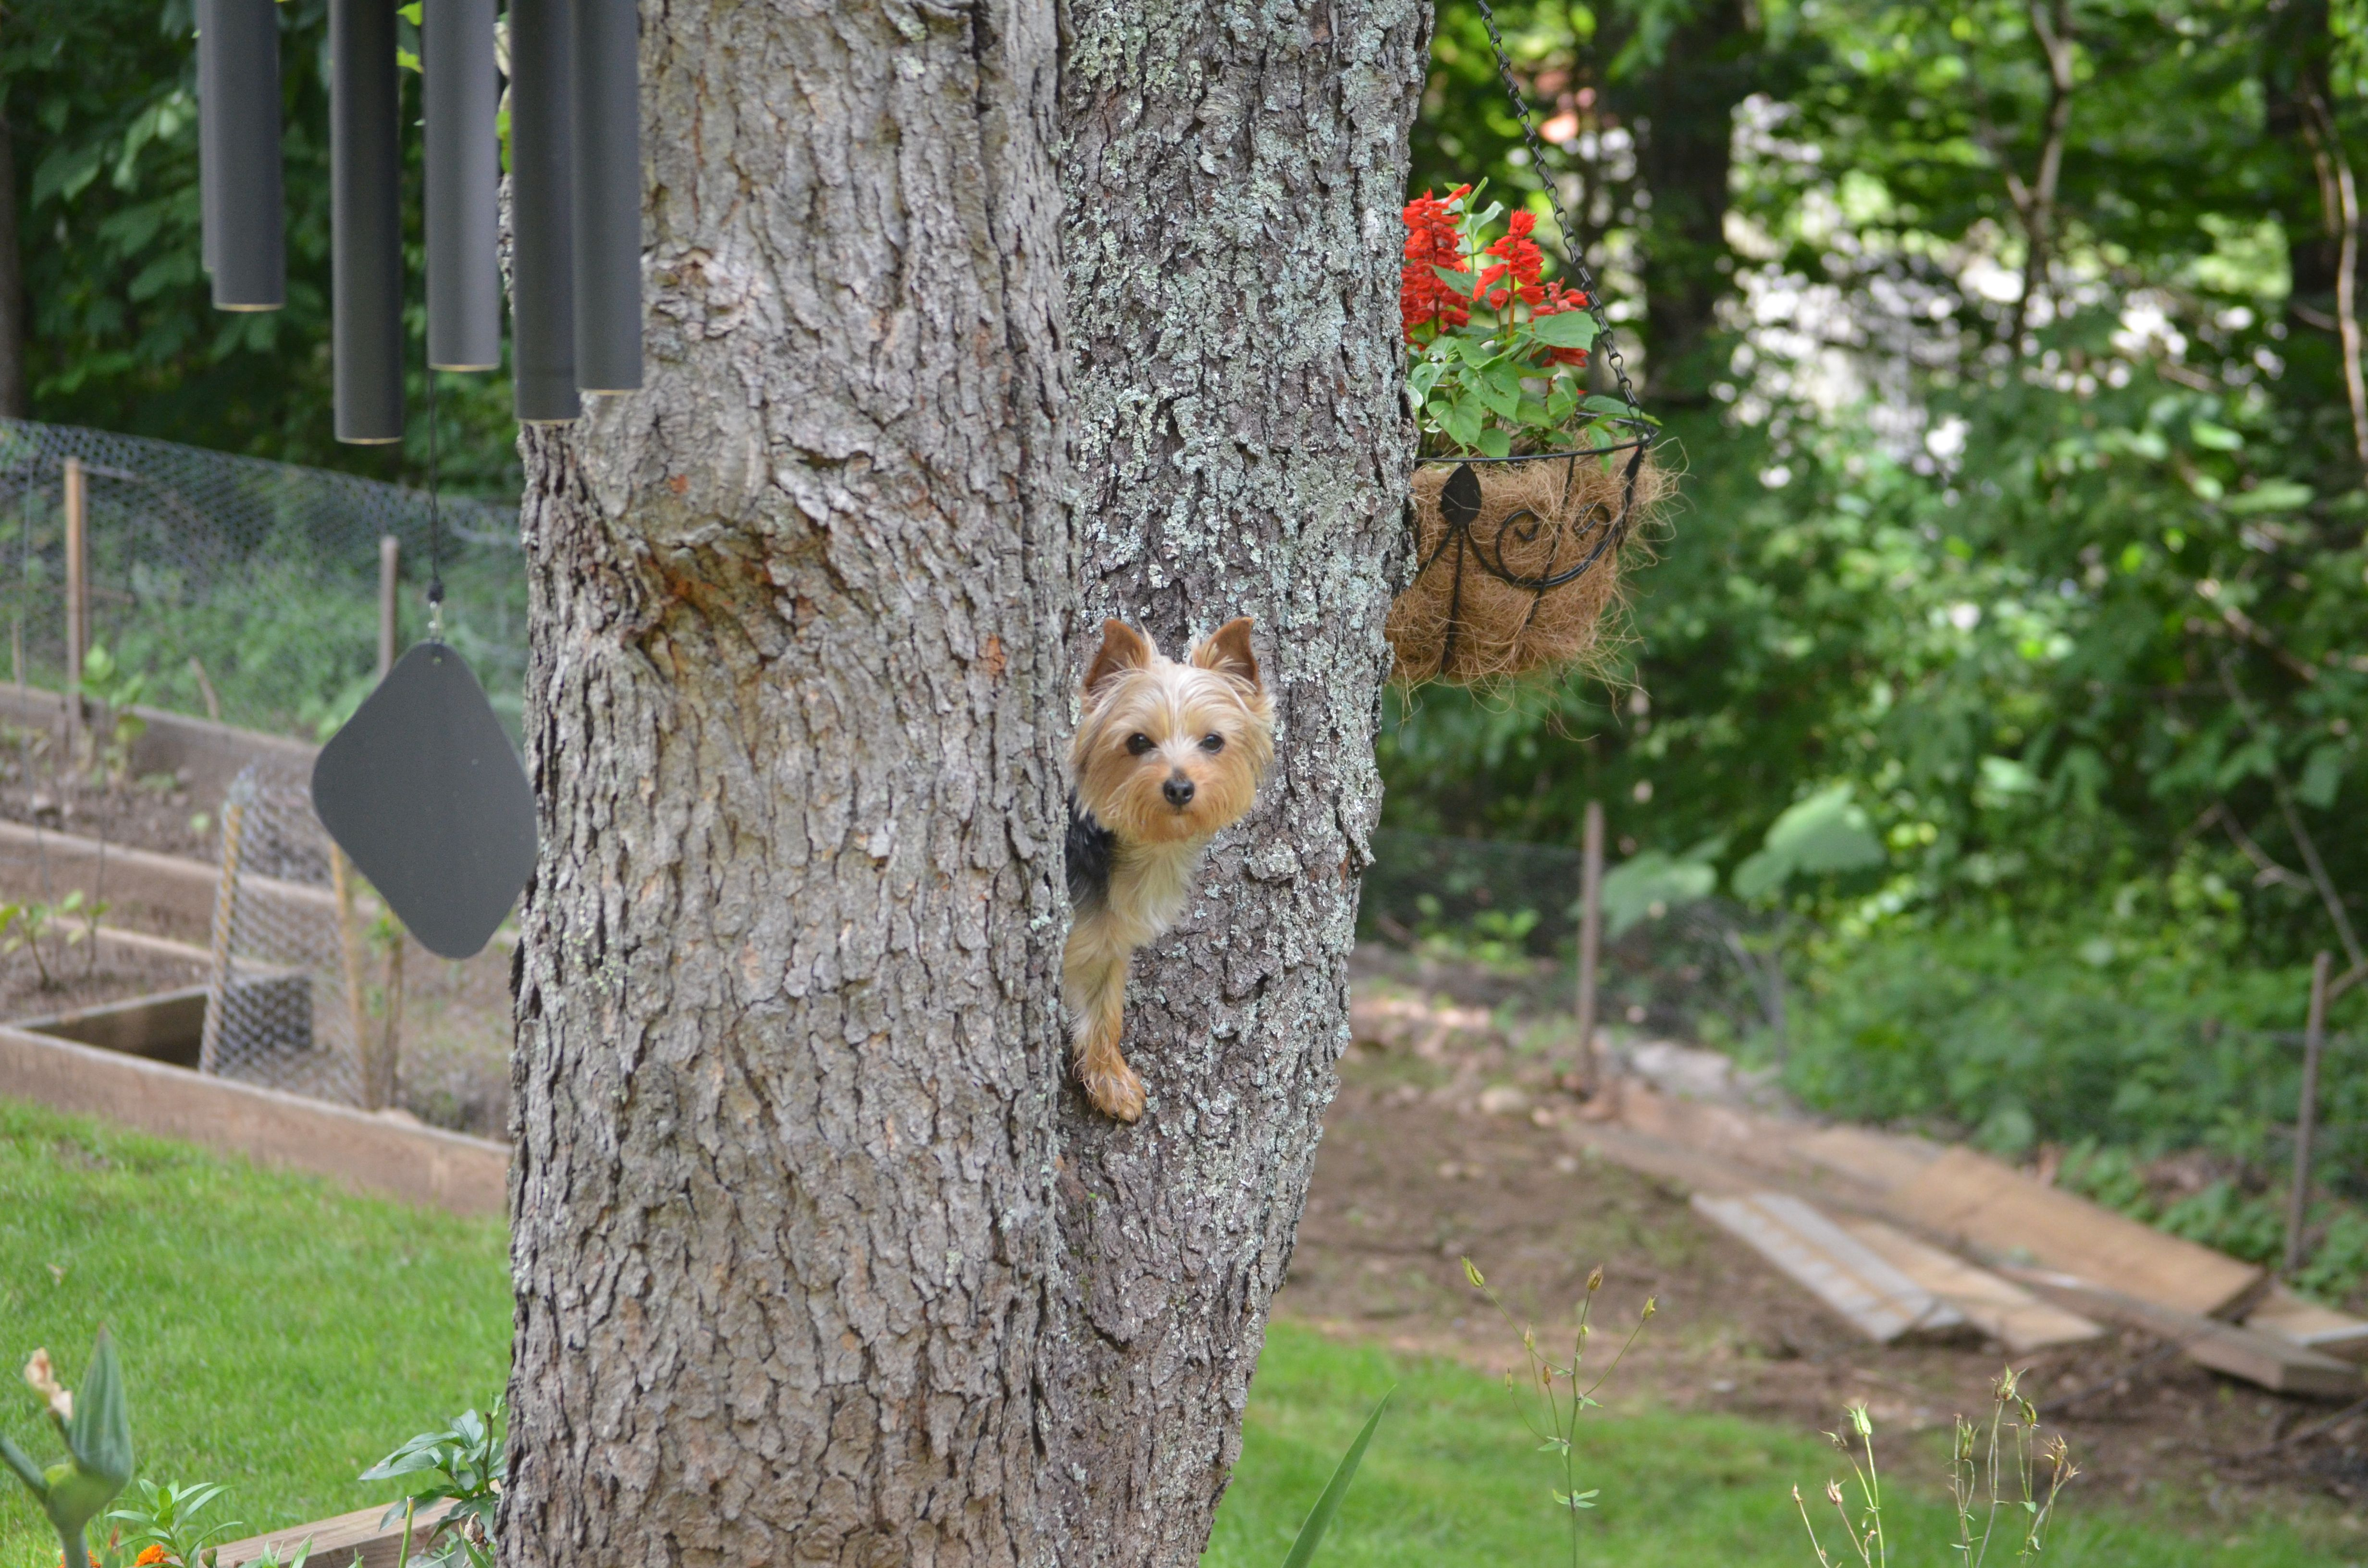 Who said dogs can't climb trees?